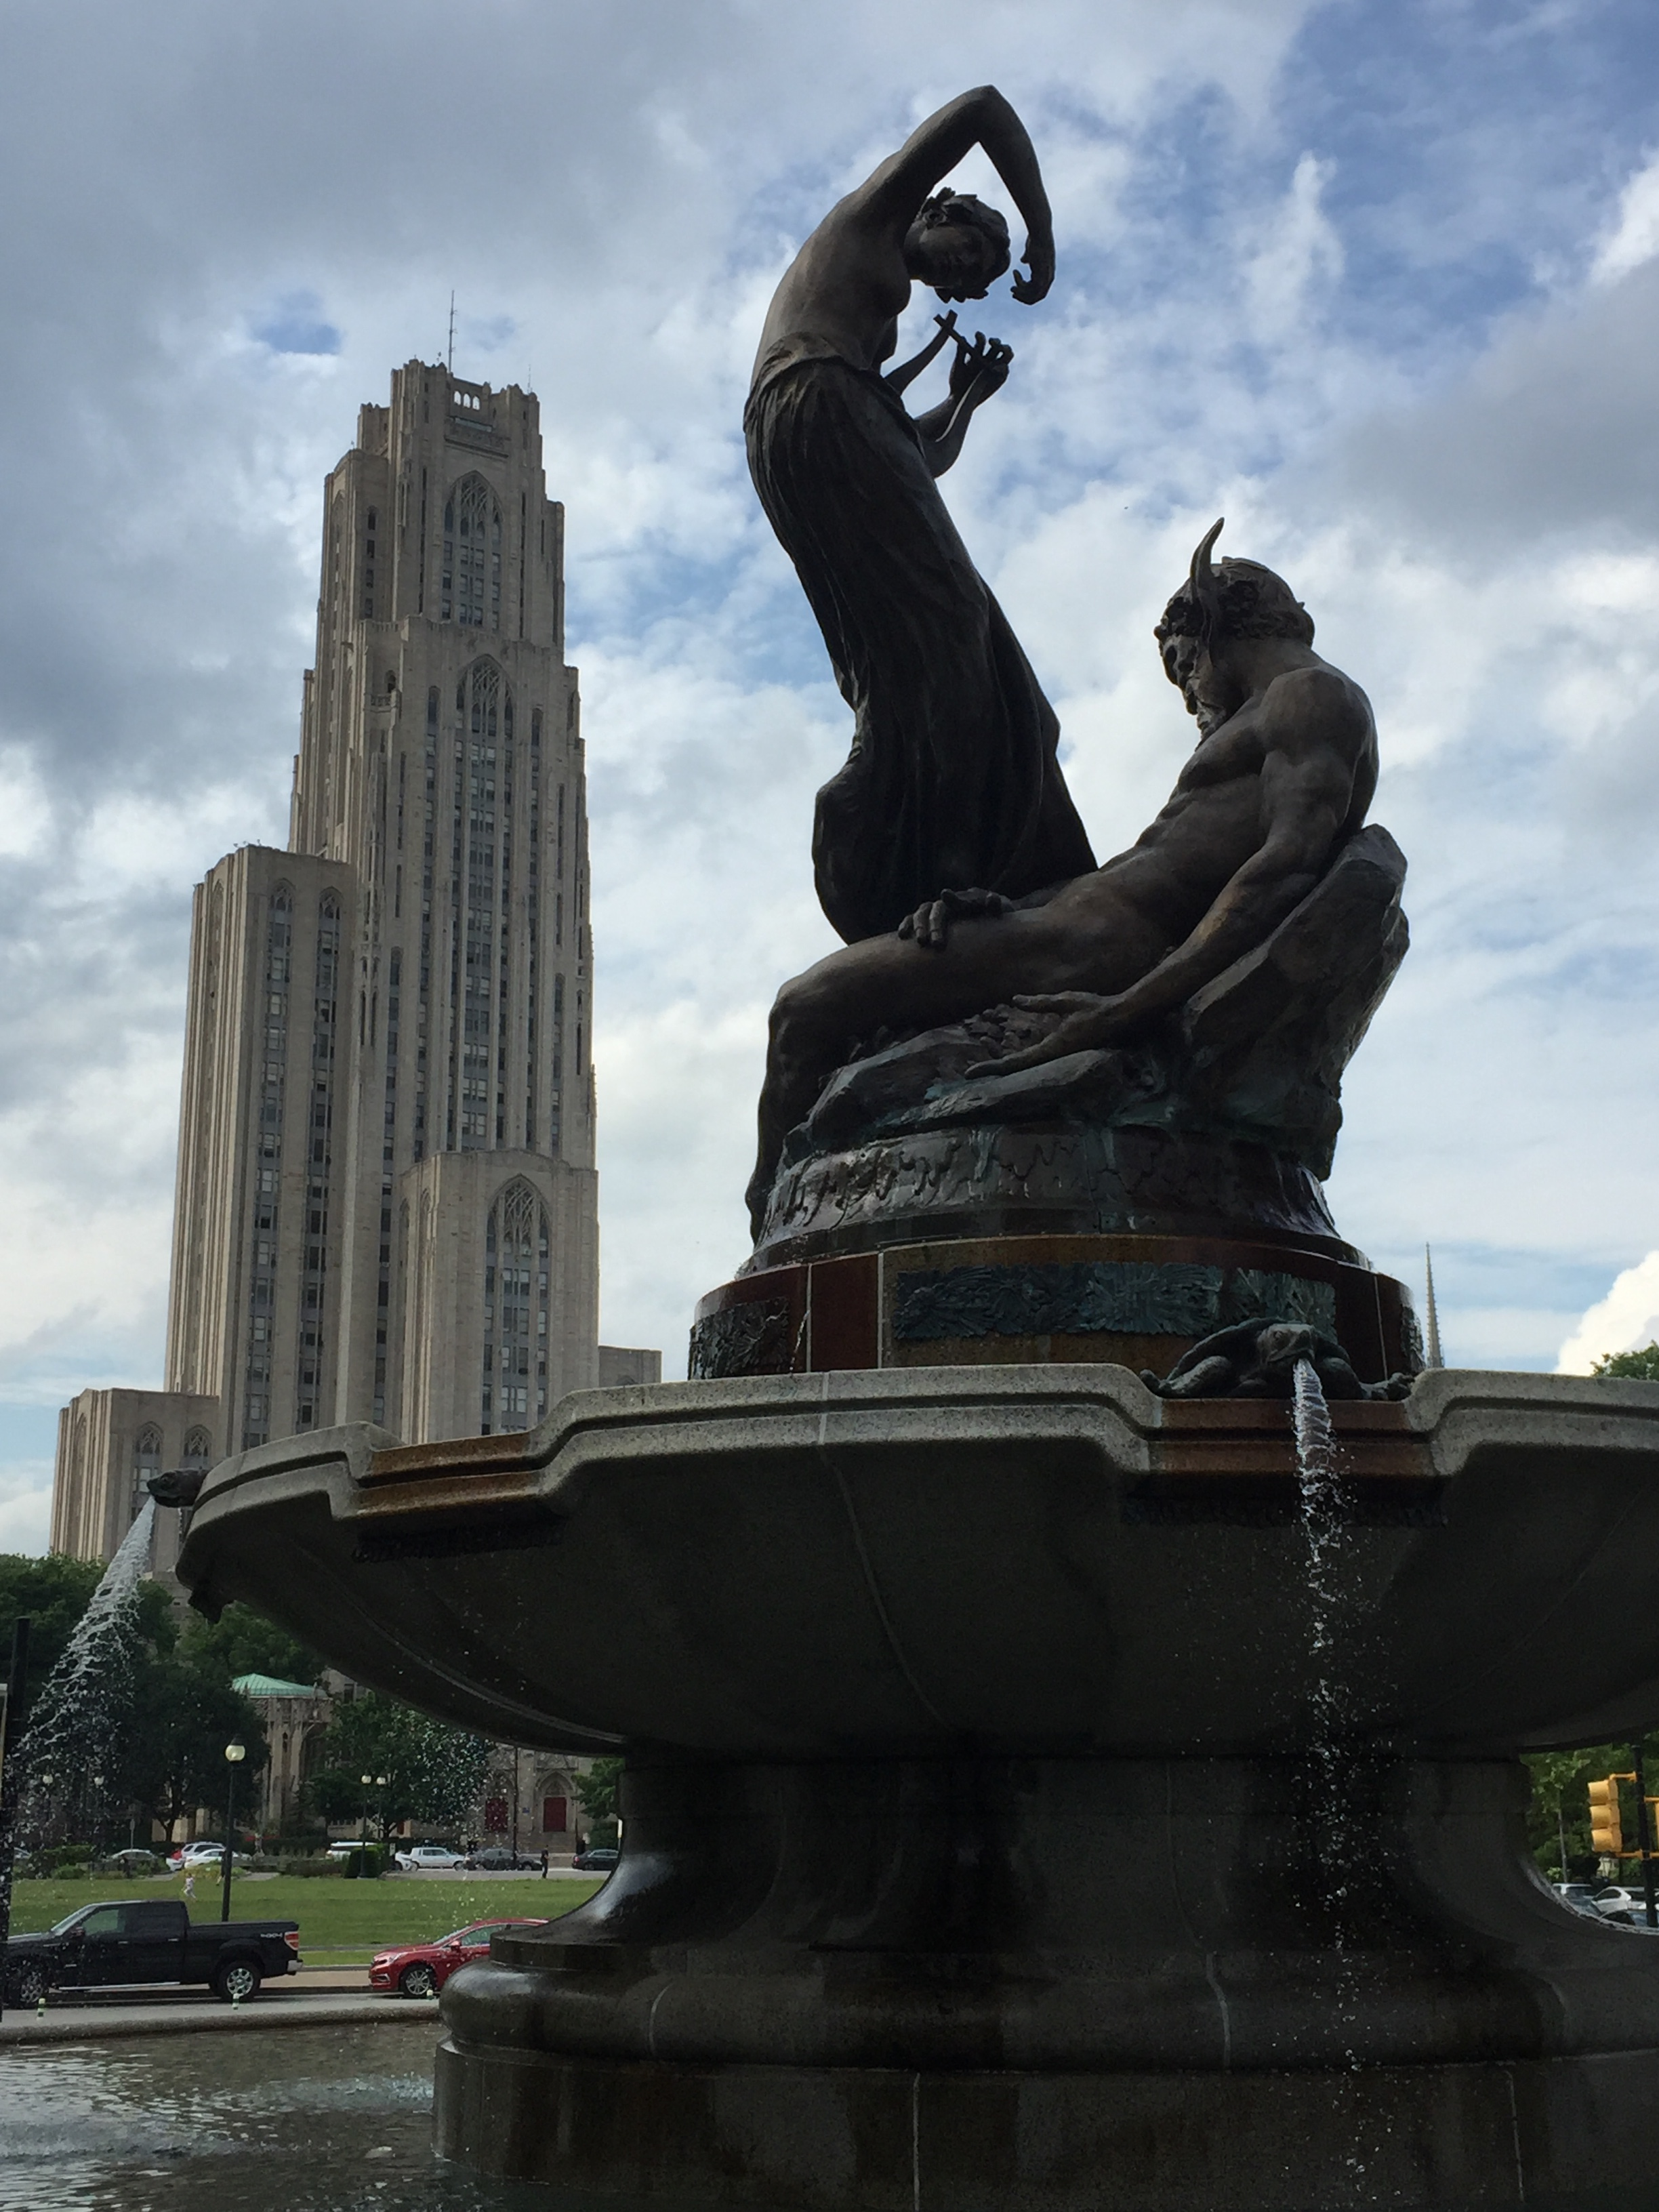 The Cathedral of Learning in the background, with the fountain of Pan and a nymph in the foreground.